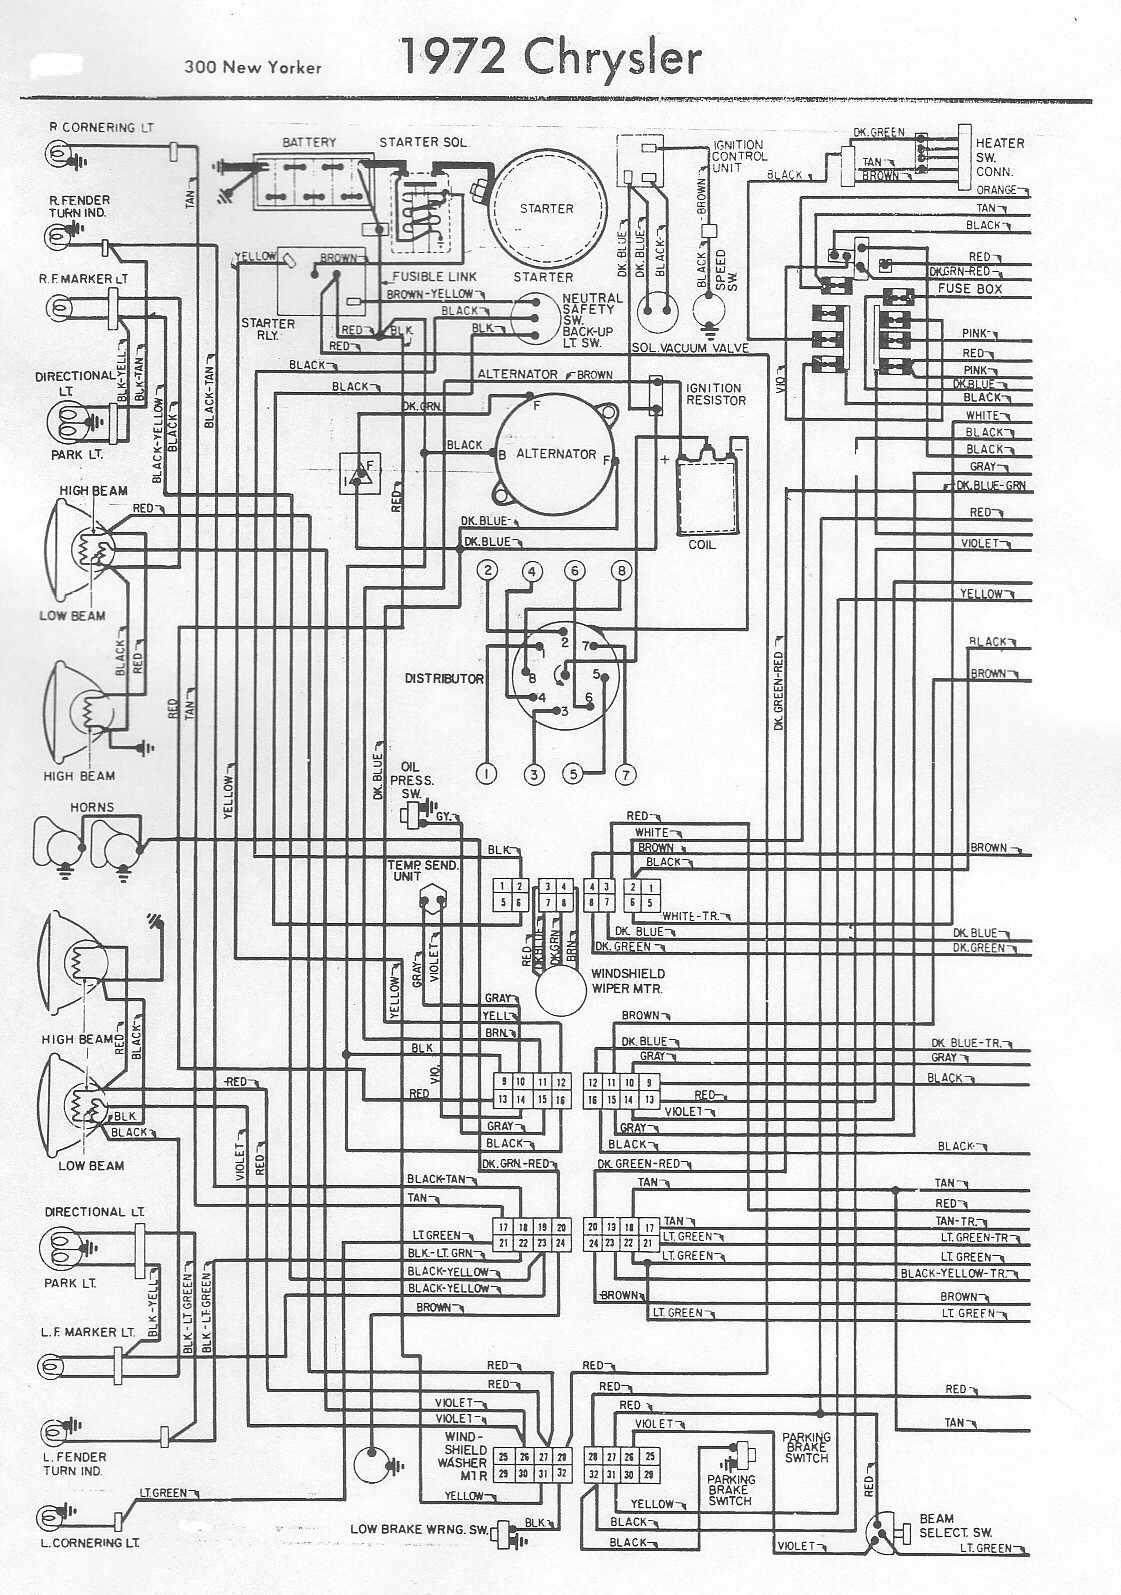 12 wire motor wiring diagram free download wiring schematics 12 Wire Motor Wiring Diagram Free Download 12 lead ac motor wiring diagram free